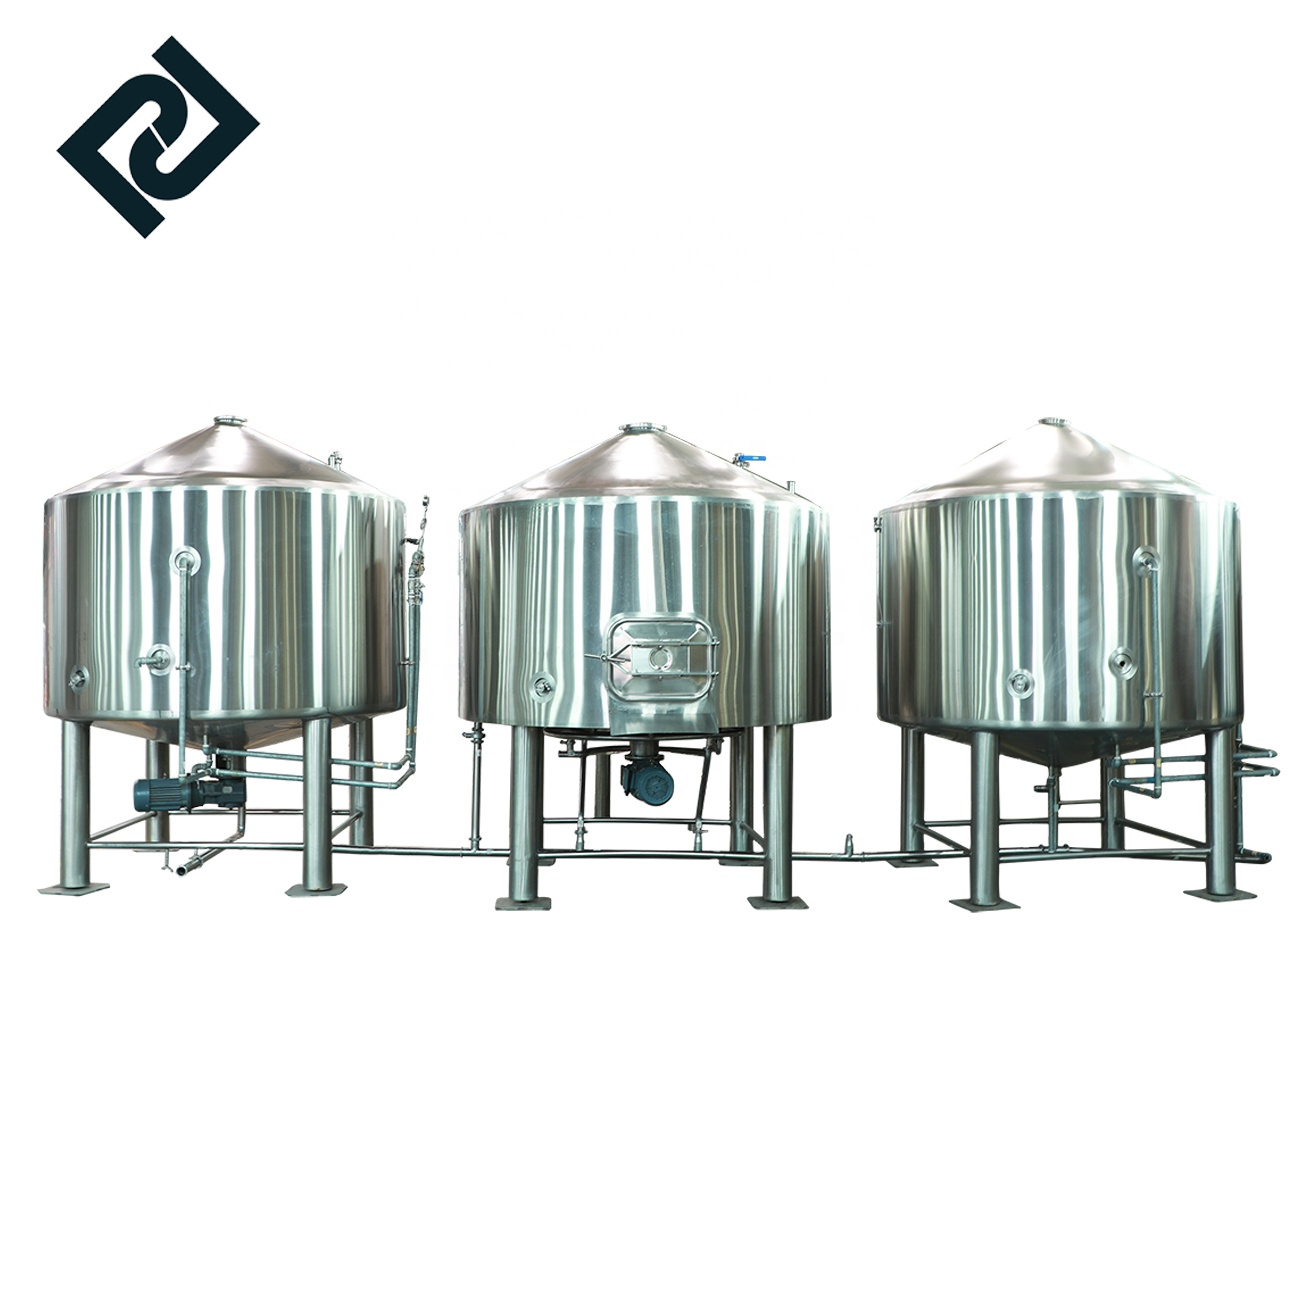 China Cheap price Beer Press Filter - 304 stainless steel beer brewing equipment mashing system for brewhous equipment – Pijiang